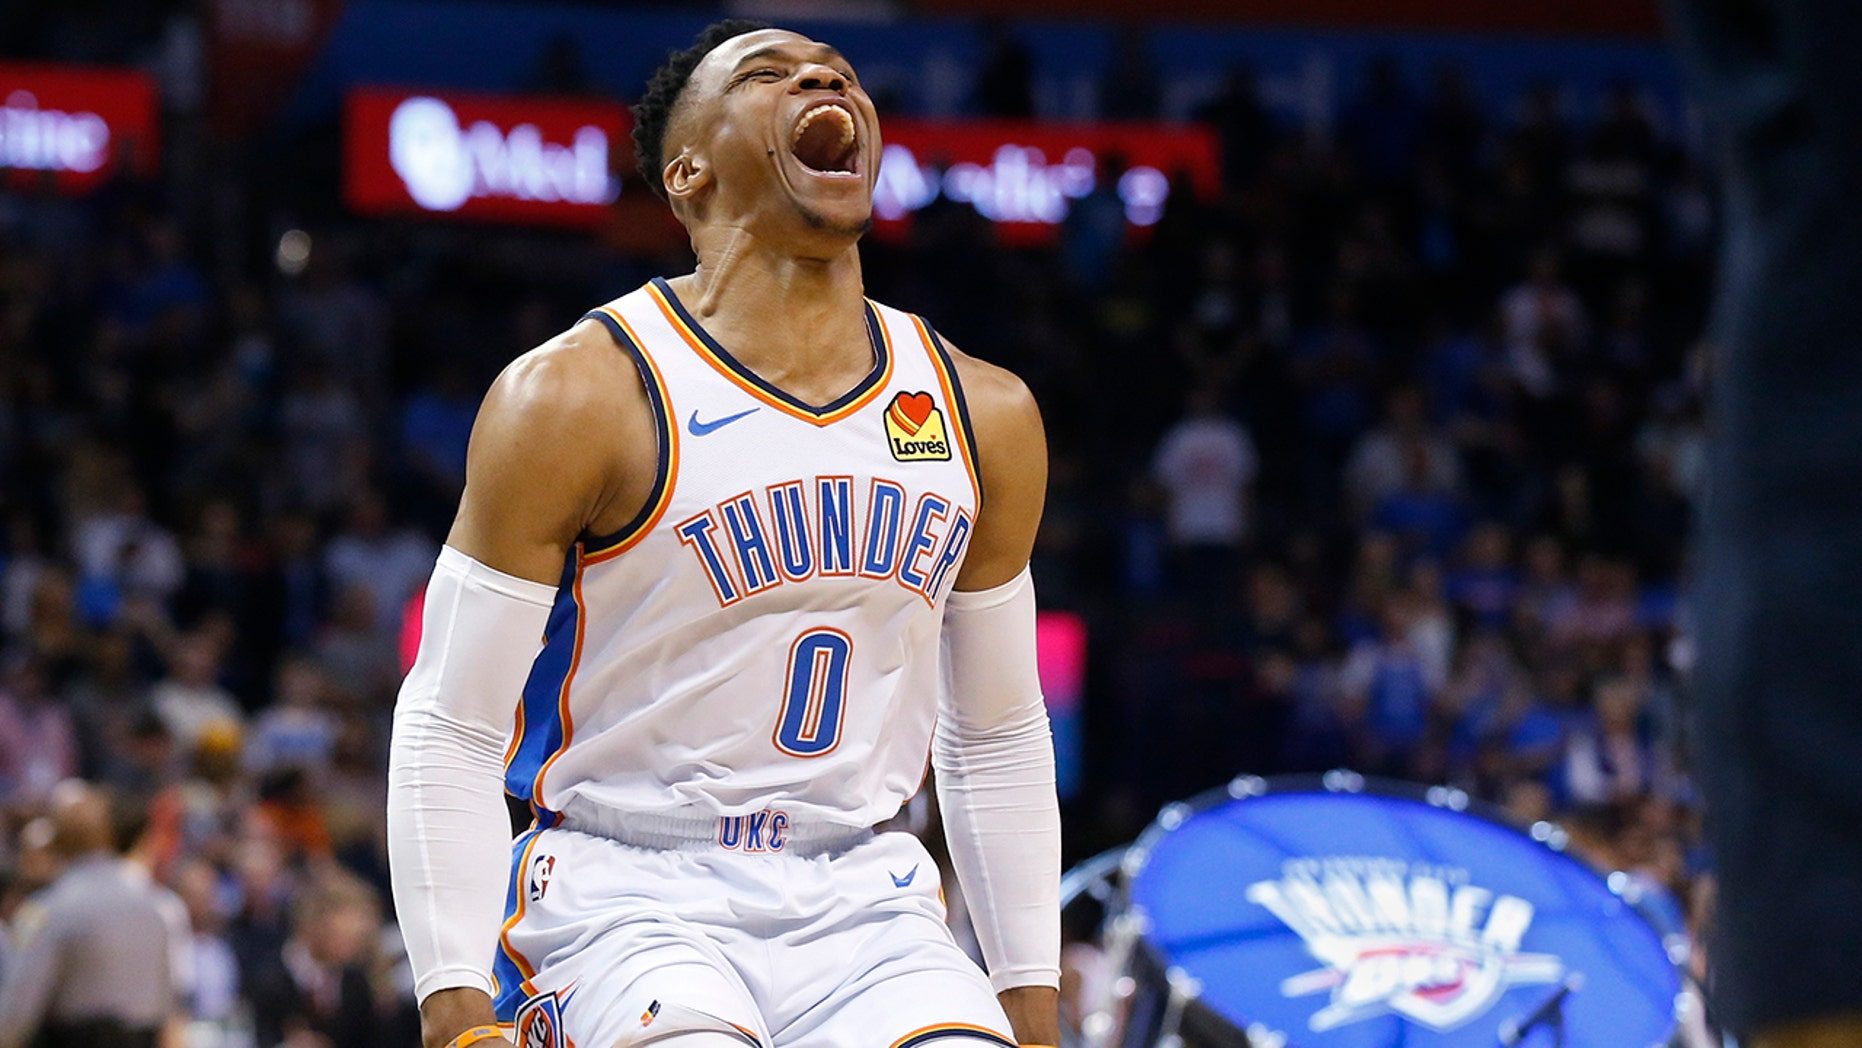 Oklahoma City Thunder guard Russell Westbrook (0) runs out and roars to the crowd before an NBA basketball game against the Los Angeles Lakers Tuesday, April 2, 2019, in Oklahoma City.